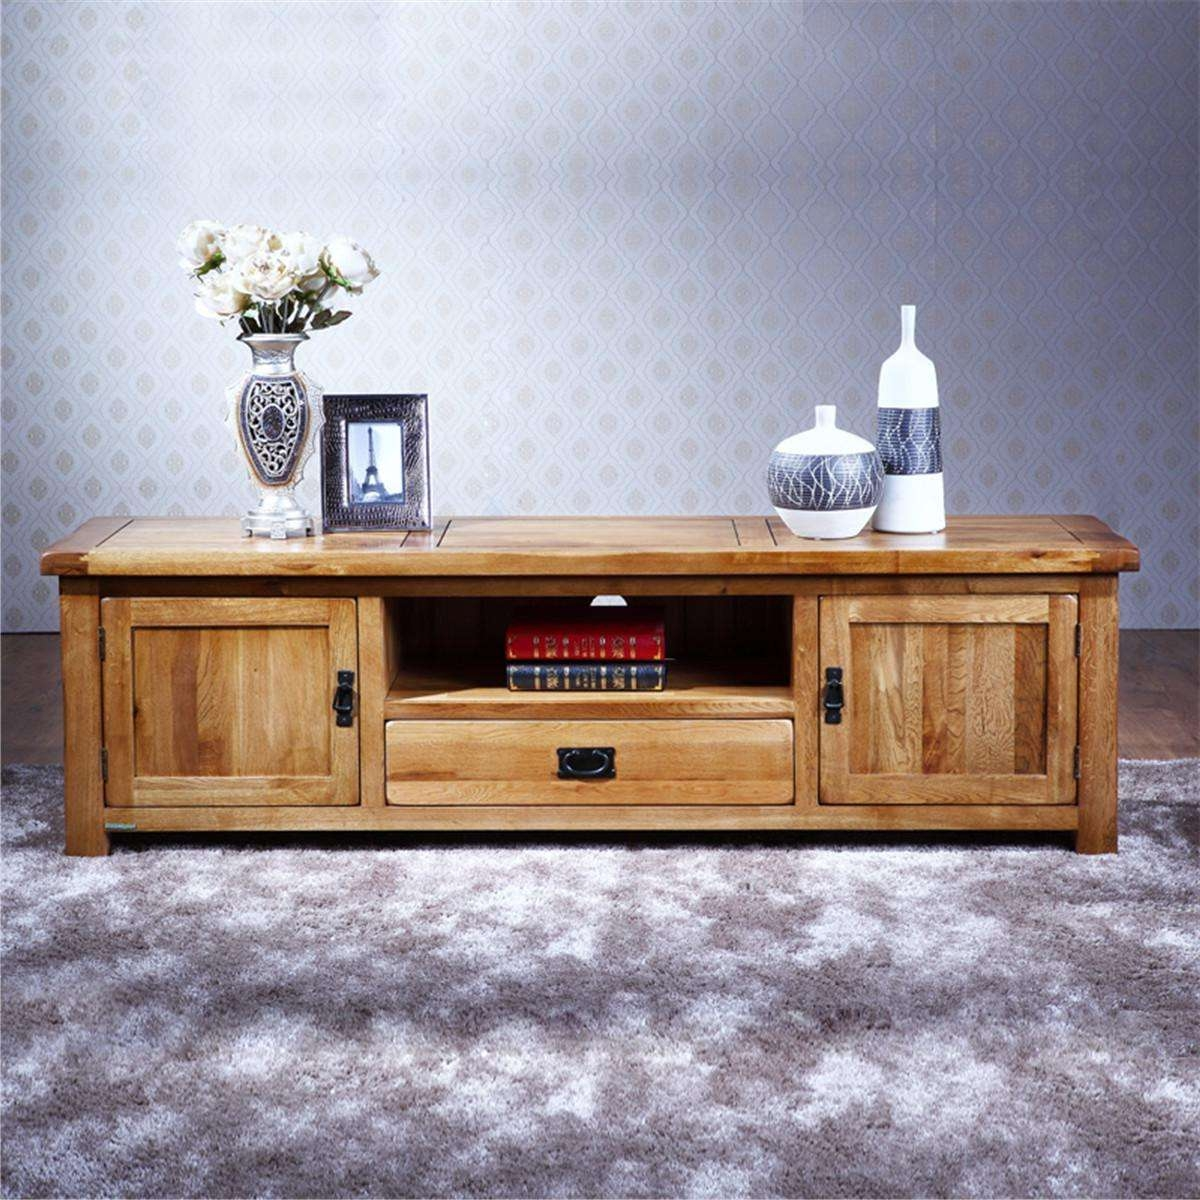 Pure Solid Wood Tv Stand Oak Media Console Inspirations Decoration Within Solid Oak Tv Stands (View 3 of 15)